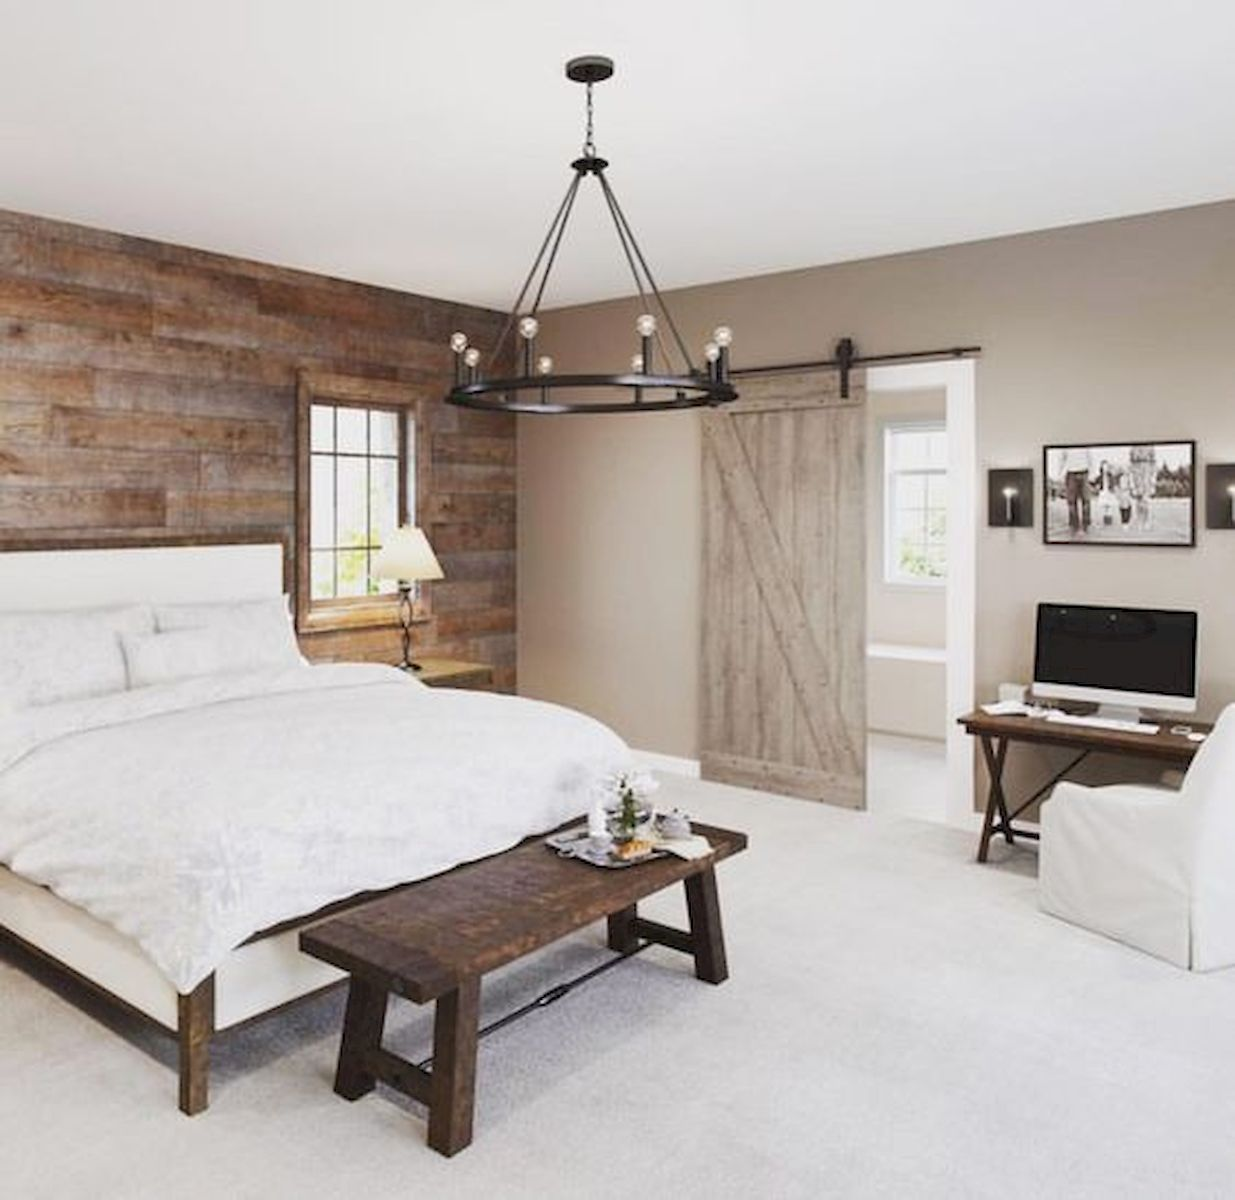 50 Modern Farmhouse Bedroom Decor Ideas Makes You Dream Beautiful In 2019 (45)